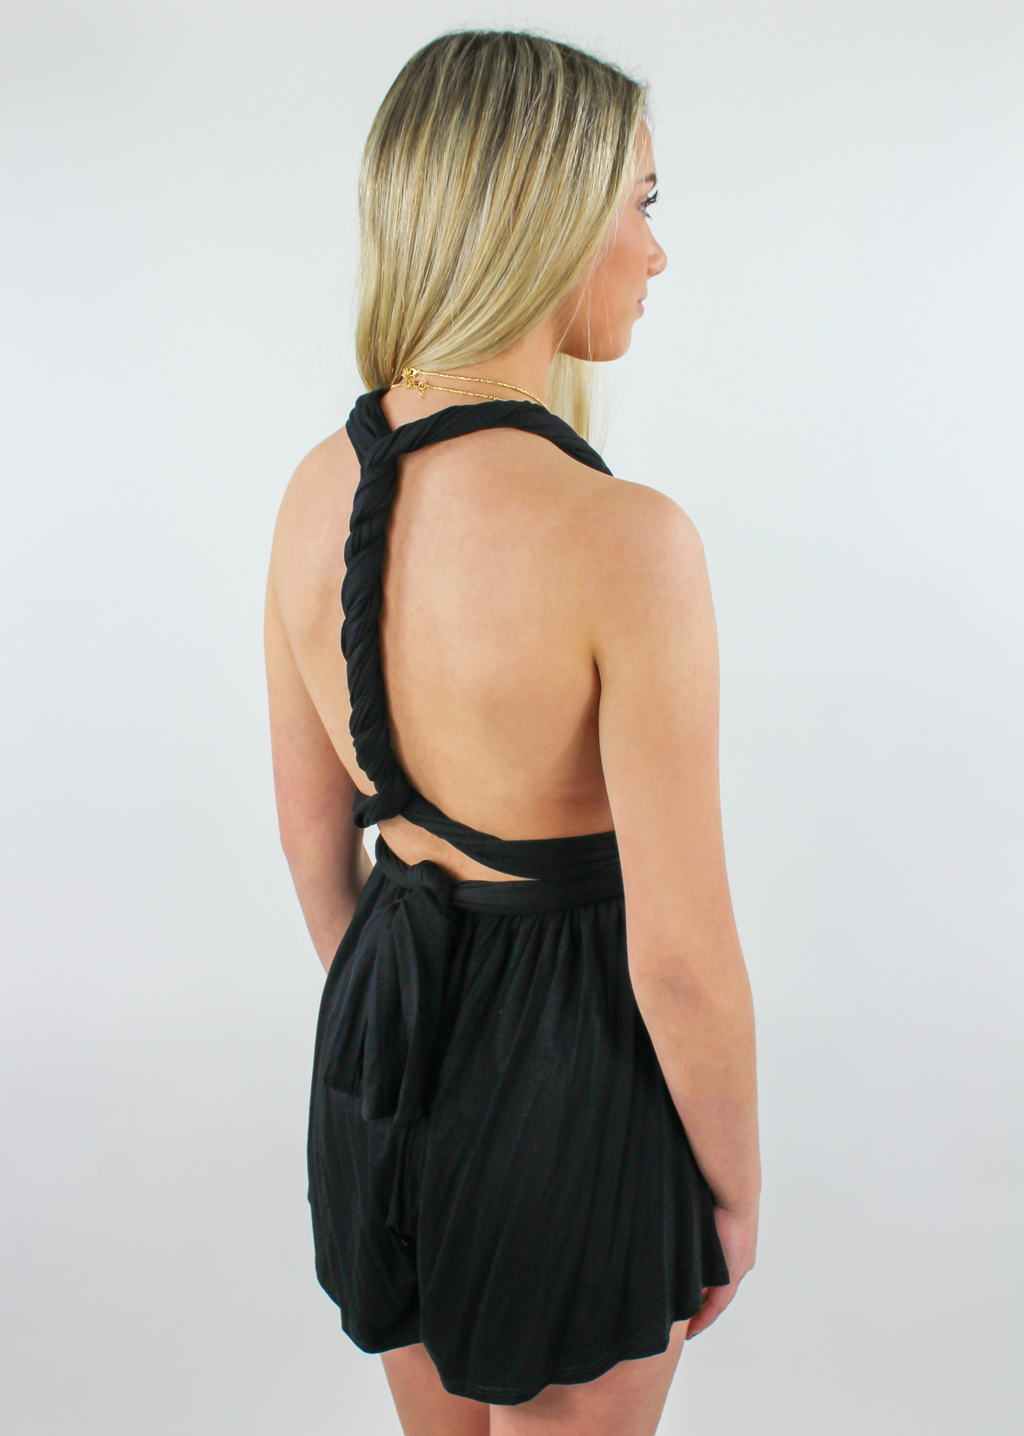 Won't Back Down Romper ★ Black - Rock N Rags